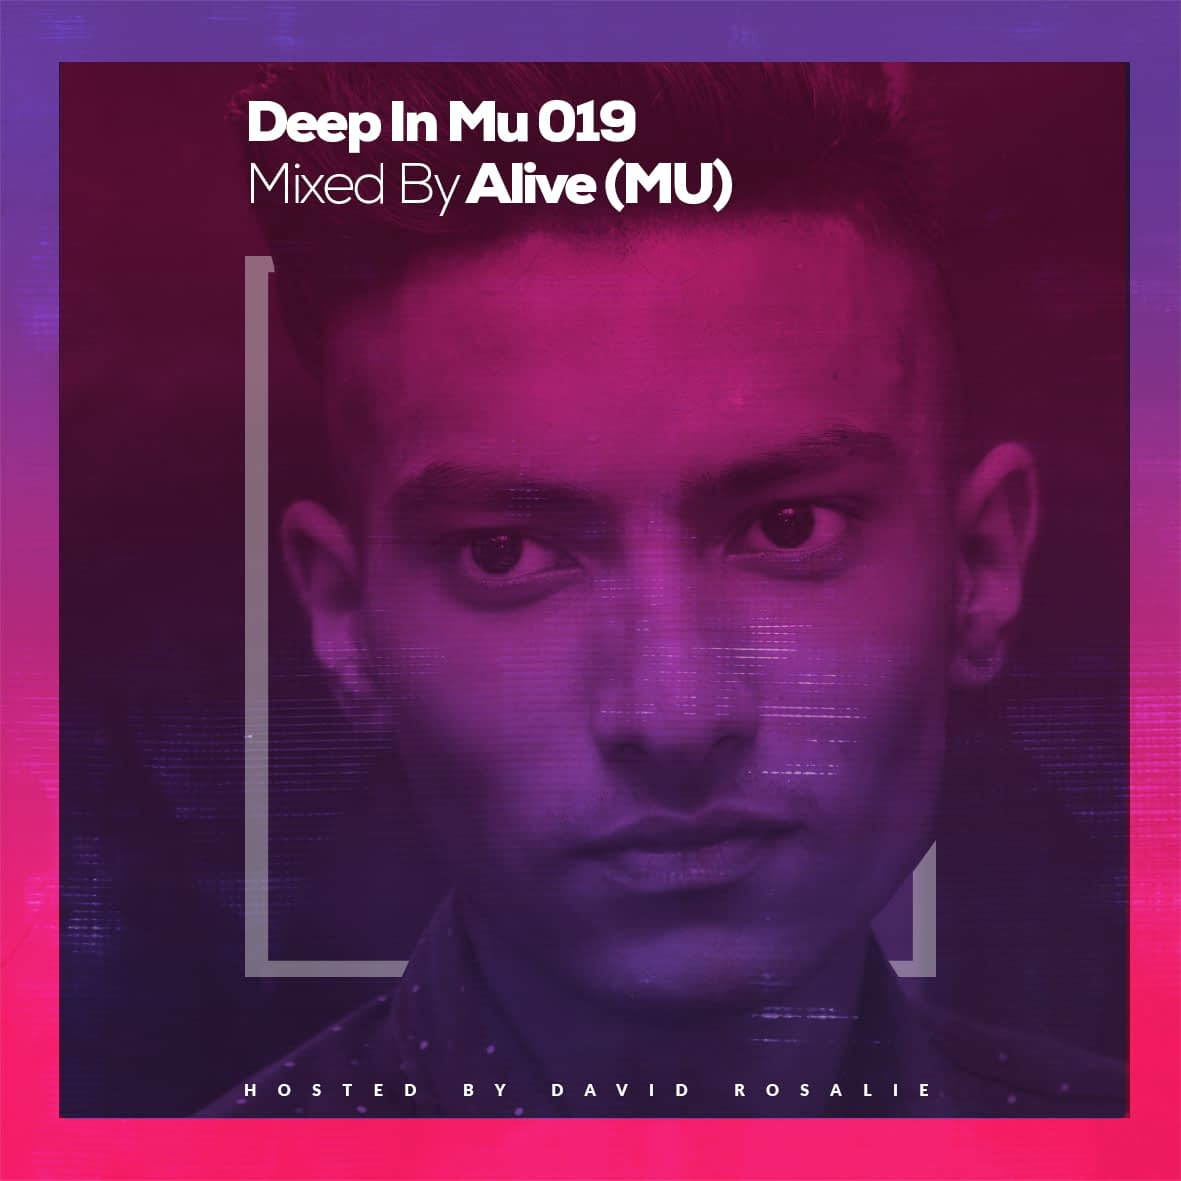 Deep In Mu 019 Mixed By Alive (MU)